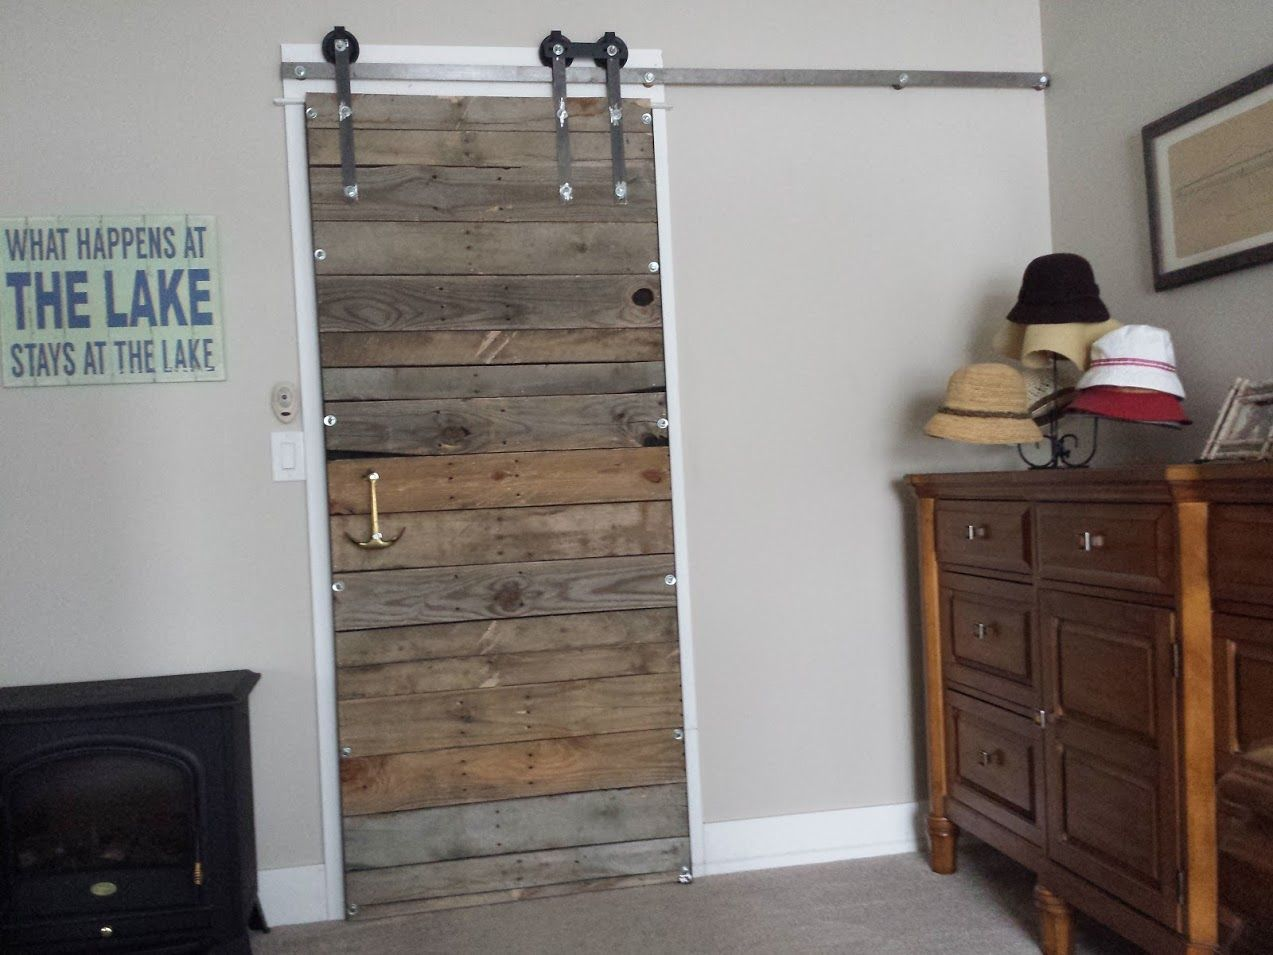 Sliding Bar Door Project. I Built This For Our Bedroom Using Pallets, Steel  And Pulleys From An Old Total Gym Machine. This Is The Inside Of The  Bedroom.